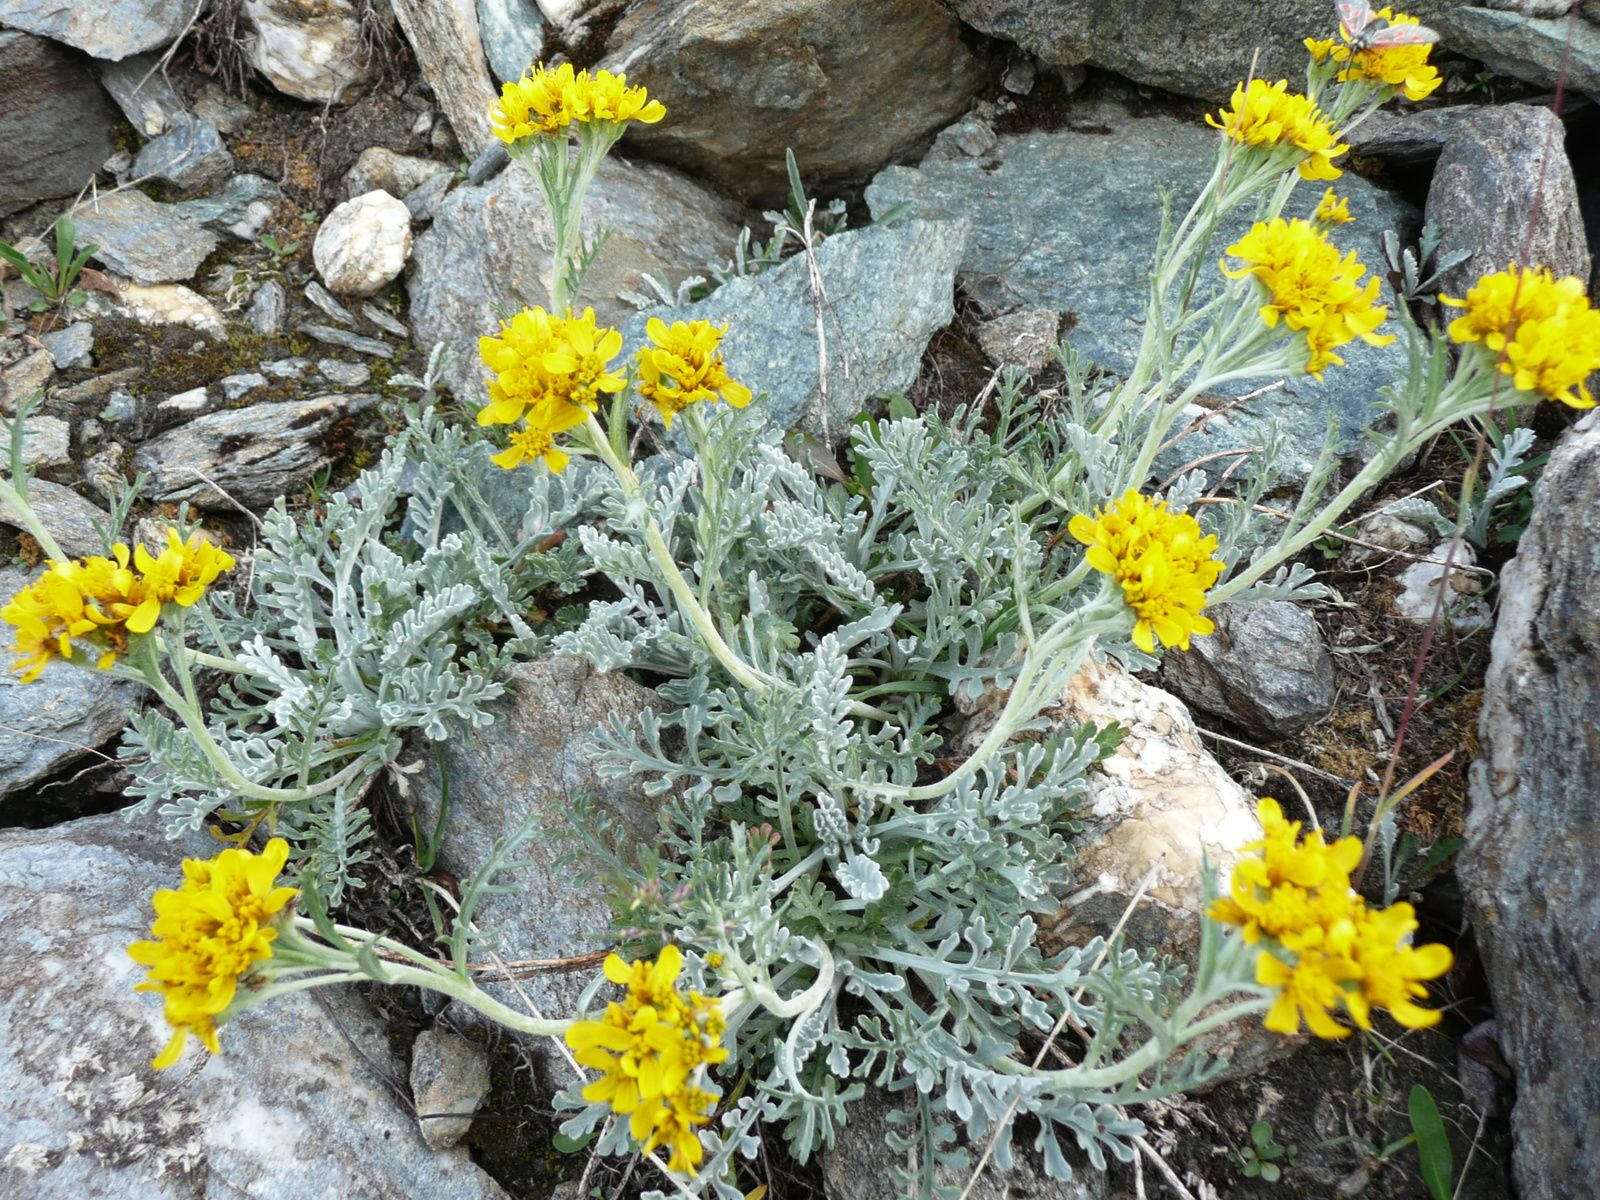 Senecio incanus, séneçon blanchâtre, belle photo de Jacques.